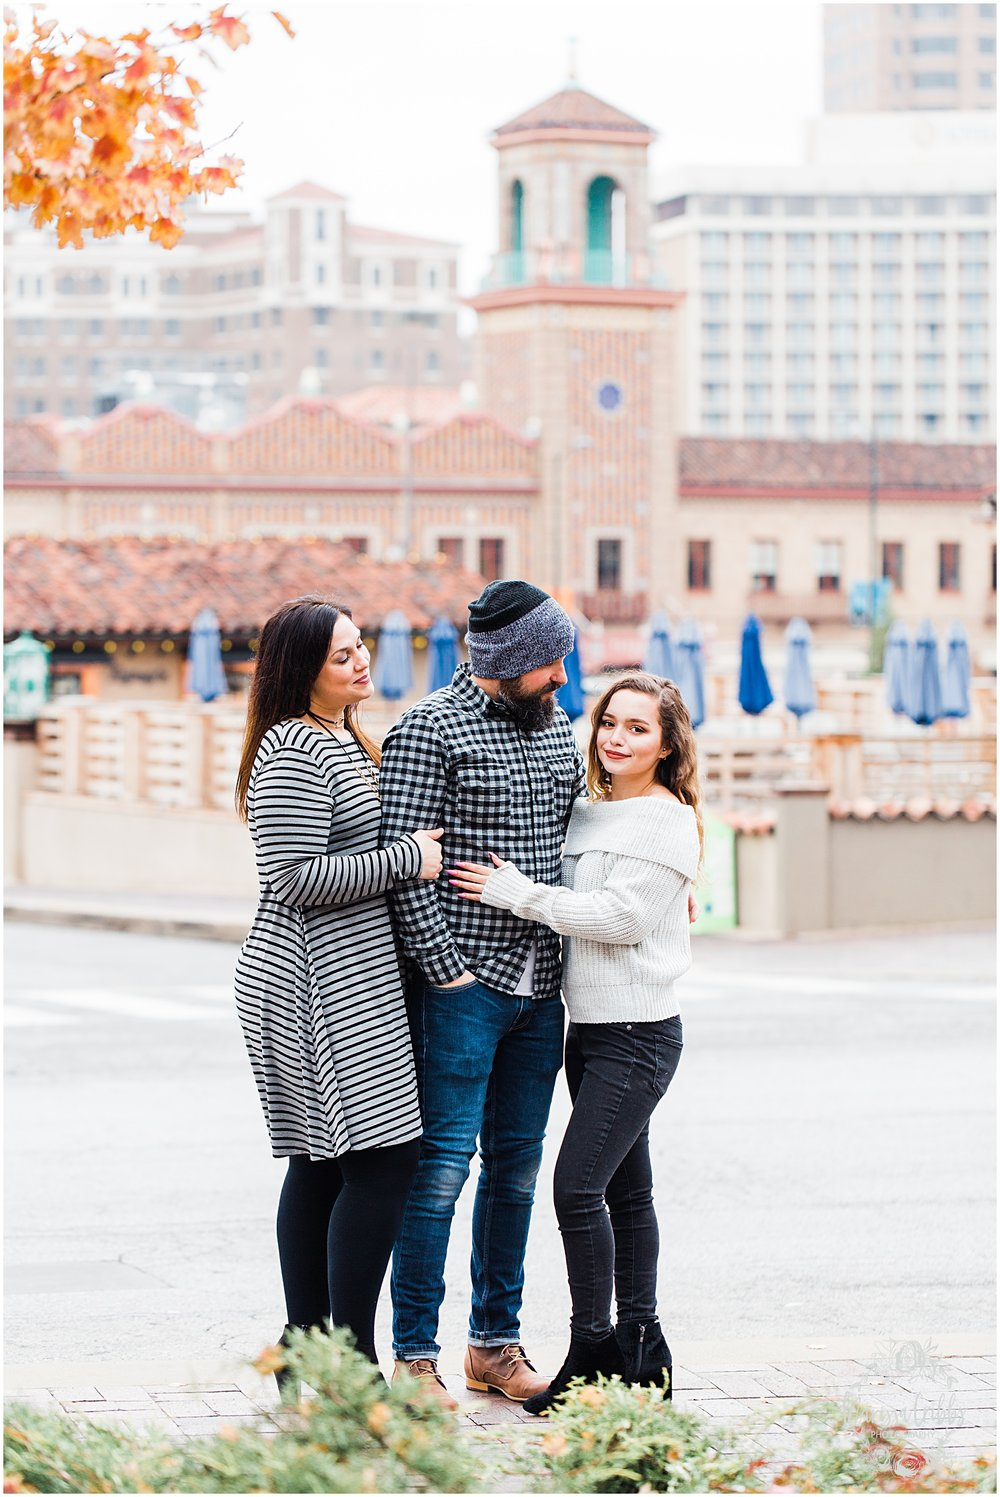 KC PLAZA FAMILY PHOTOGRAPHY | MARISSA CRIBBS PHOTOGRAPHY_4004.jpg